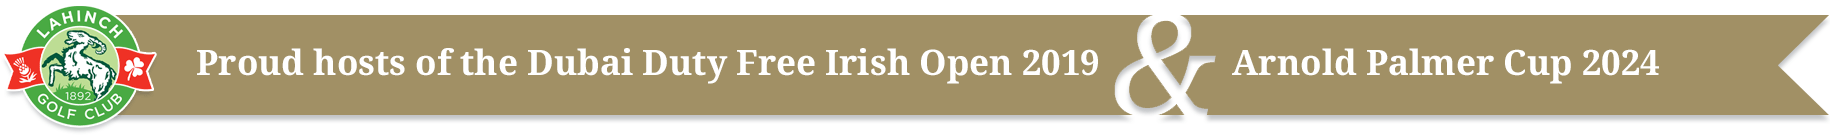 Proud hosts of the Dubai Duty Free Irish Open 2019 and the Arnold Palmer Cup 2024